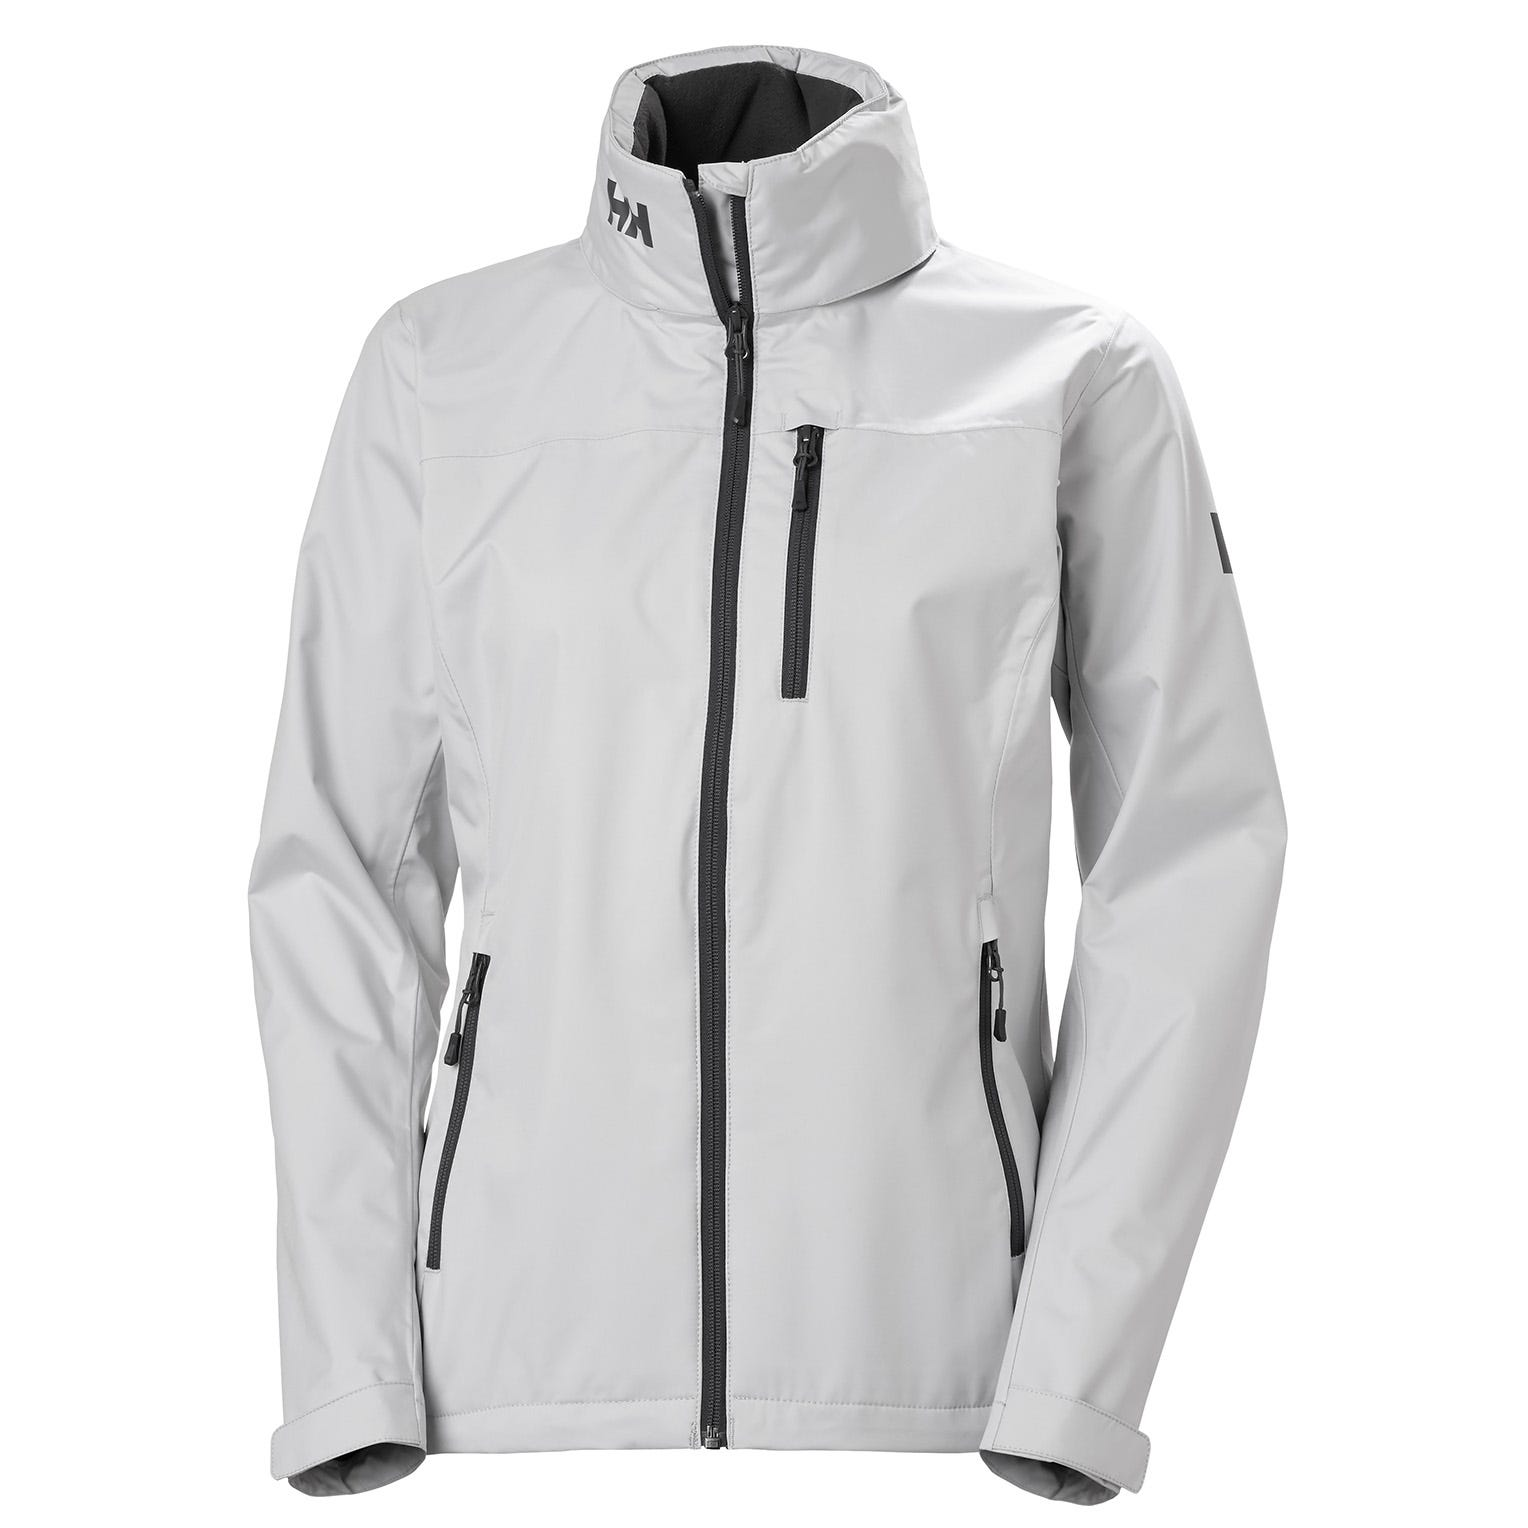 Helly Hansen Womens Crew Hooded Sailing Jacket Grey L